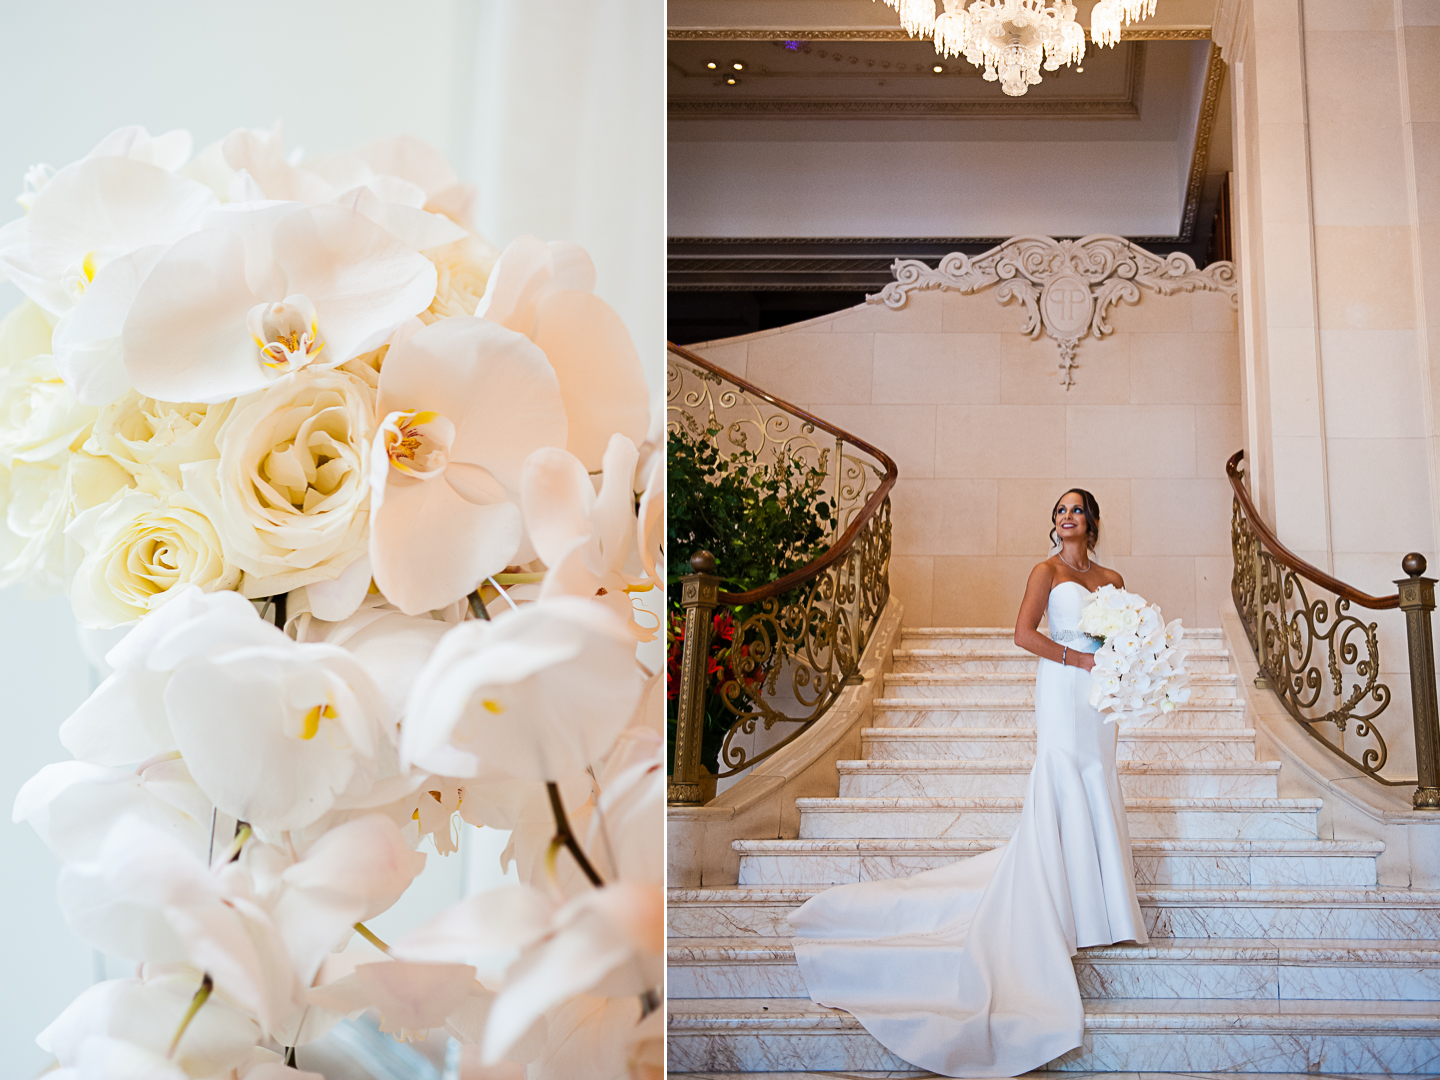 Bridal portraits in The Plaza lobby